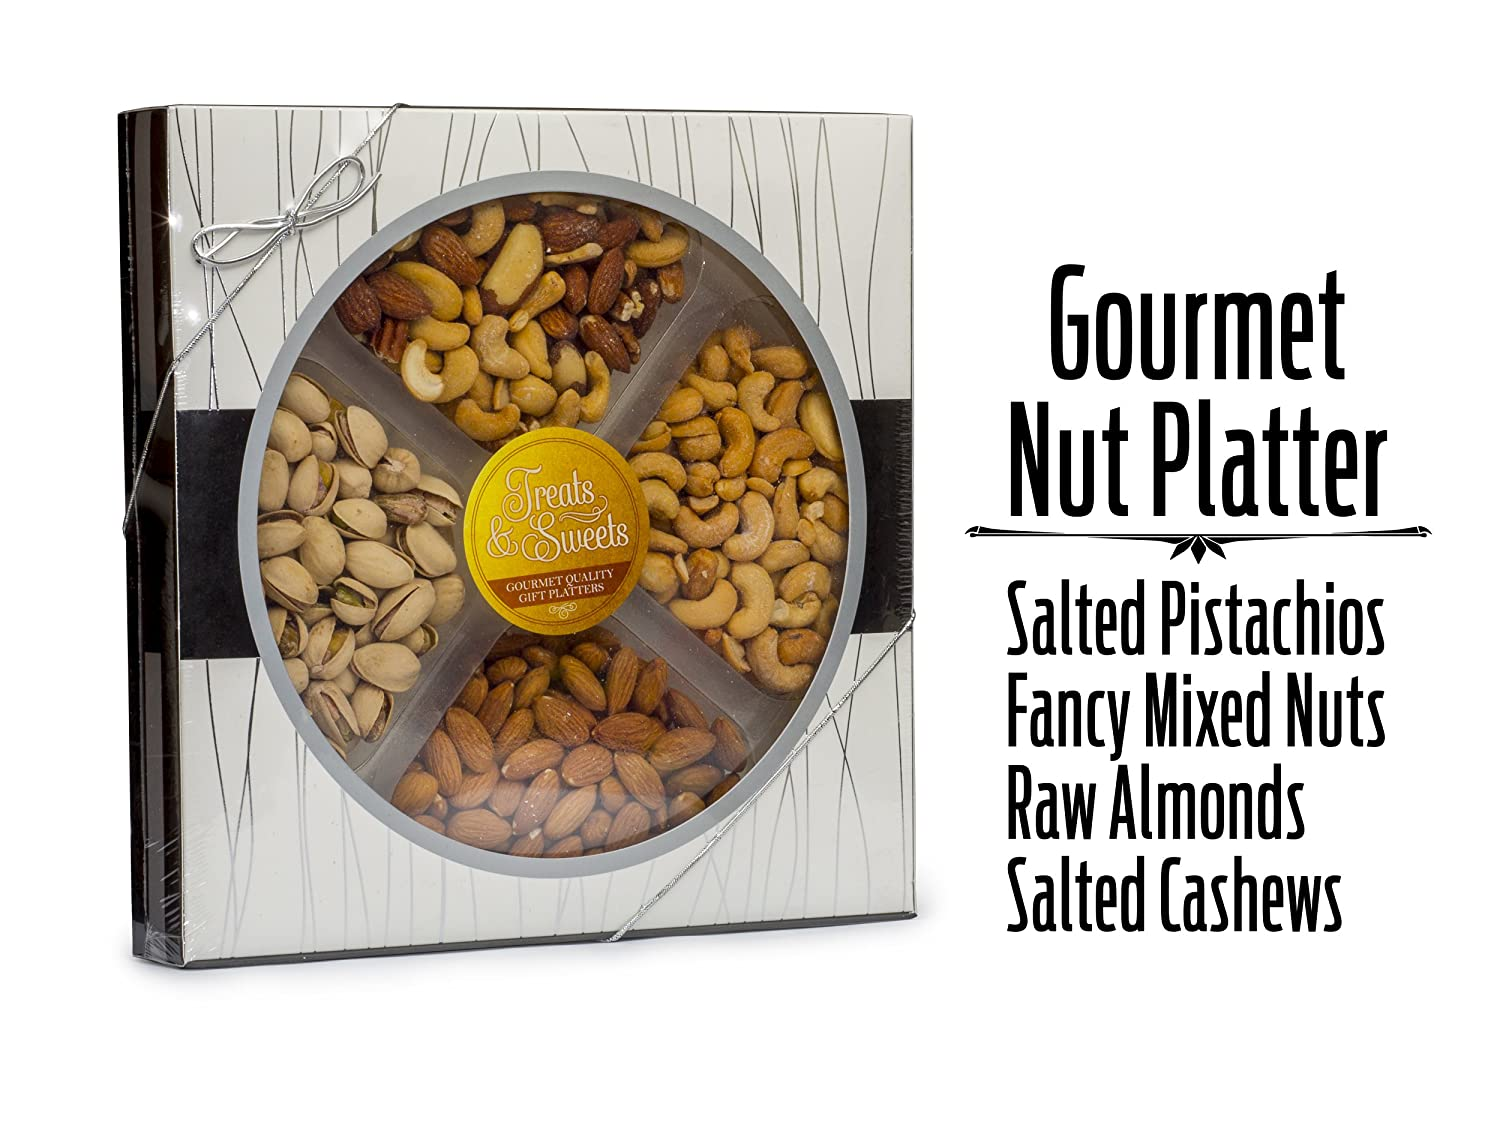 Father's Day Assorted Nuts / Fancy Salted Mixed Nuts, Large Deluxe Kosher  Salted Pistachios, Salted